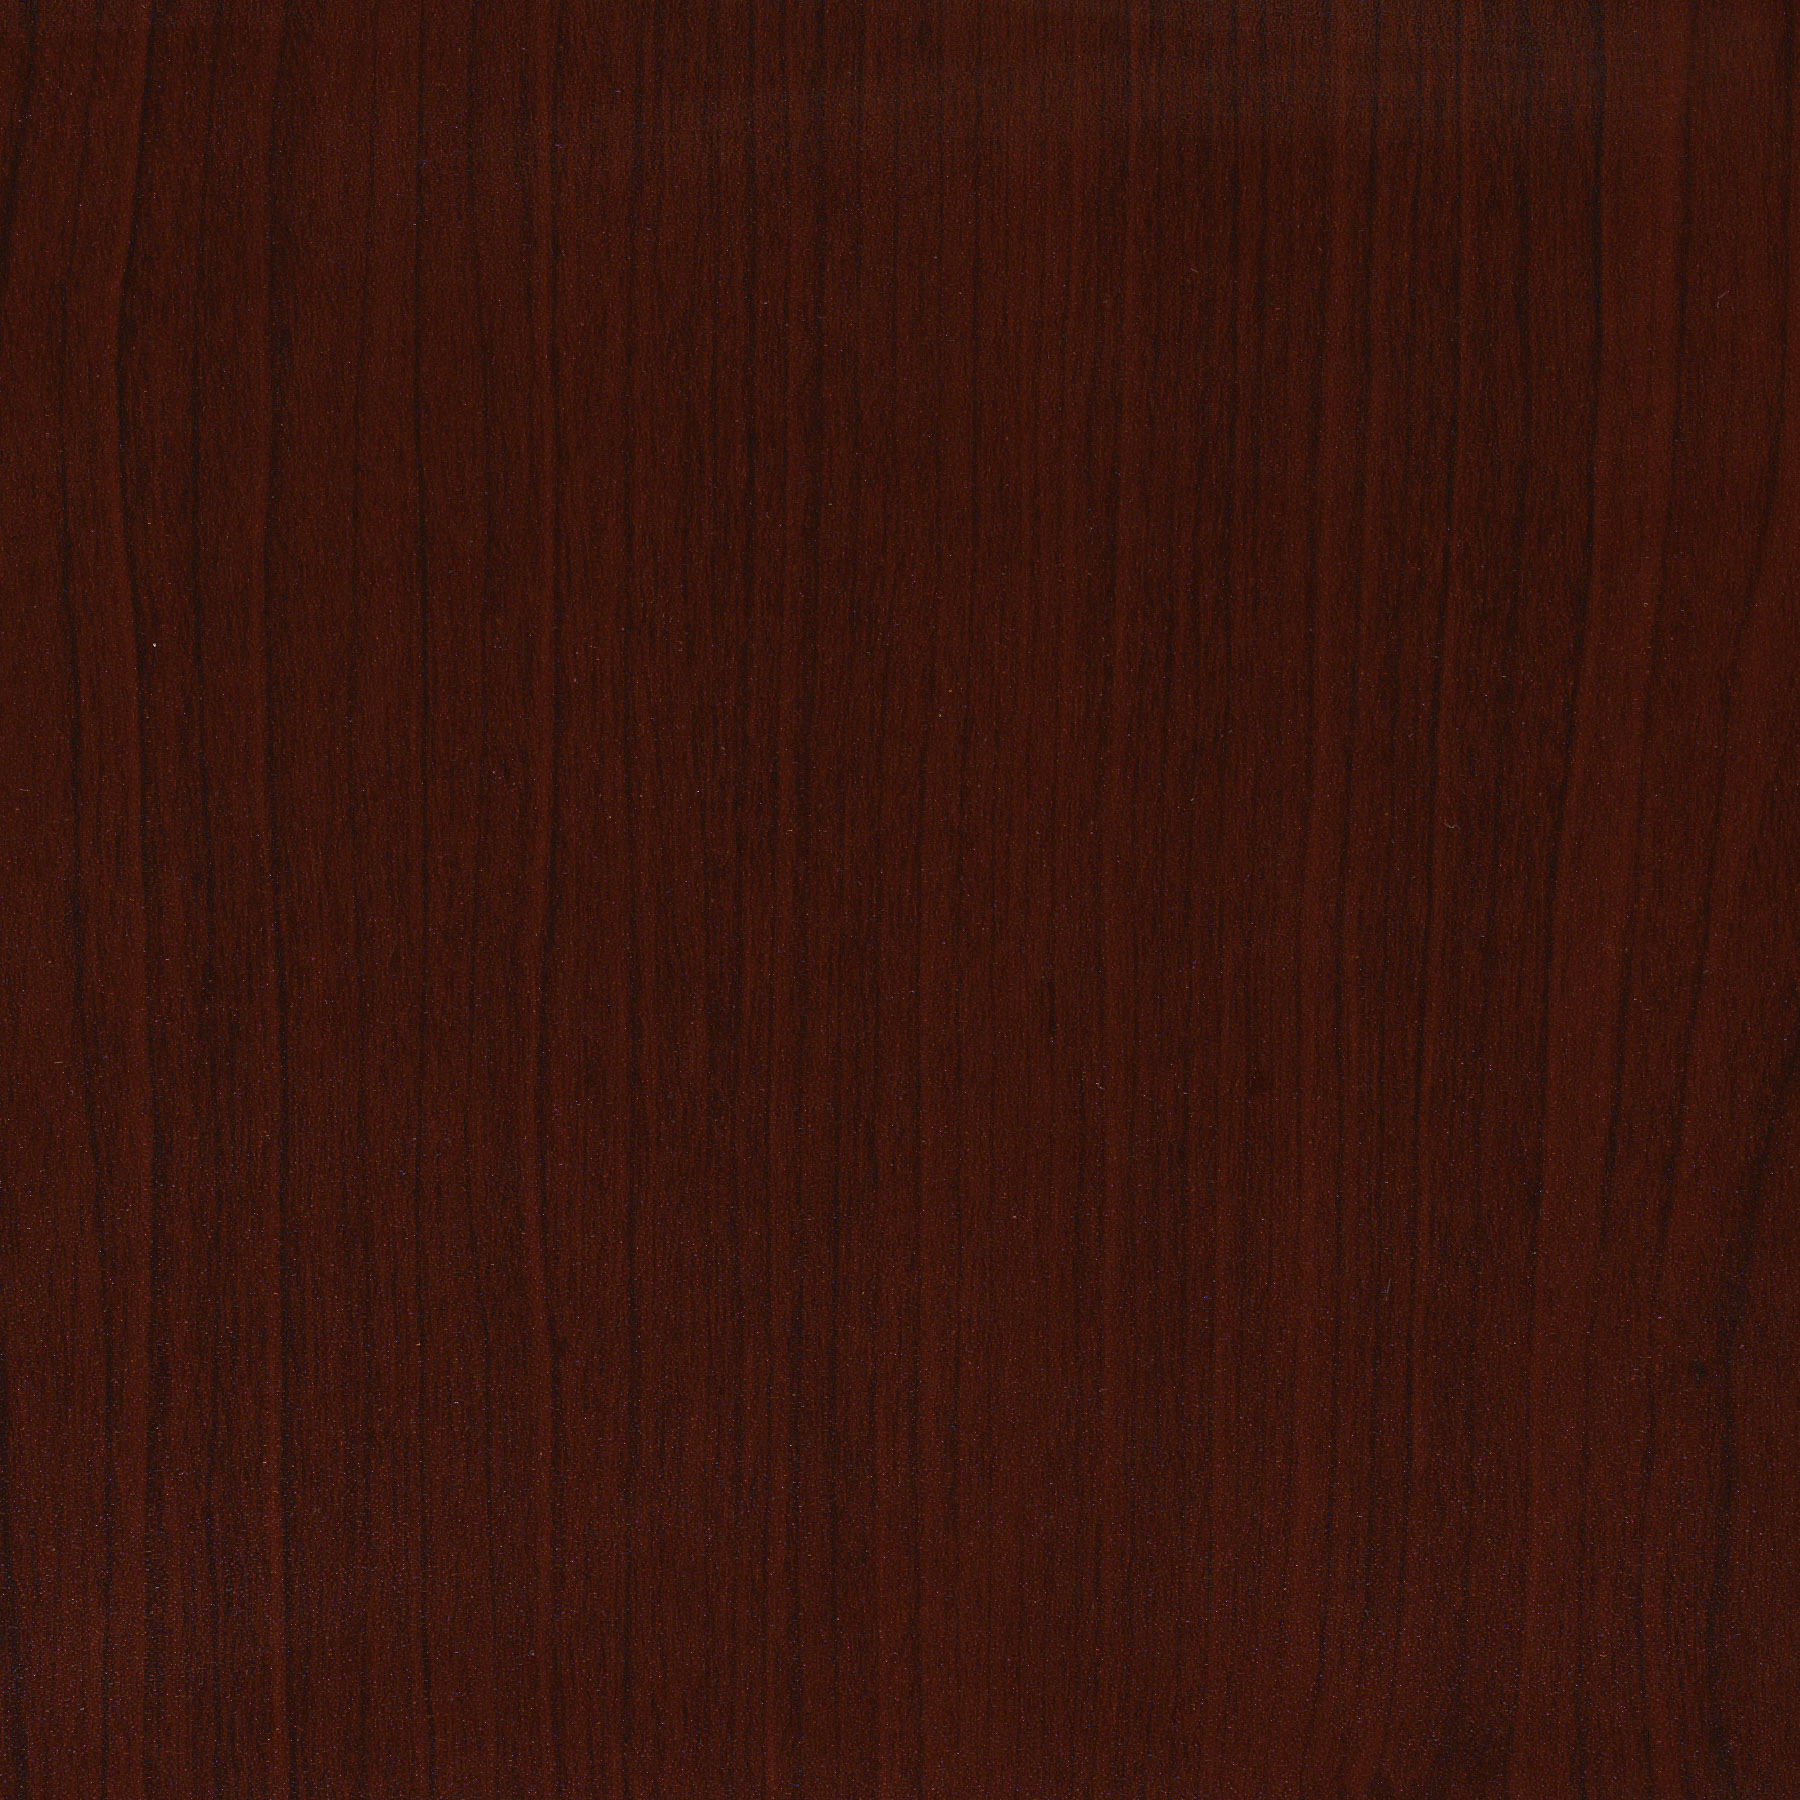 Mahogany texture seamless imgkid the image kid